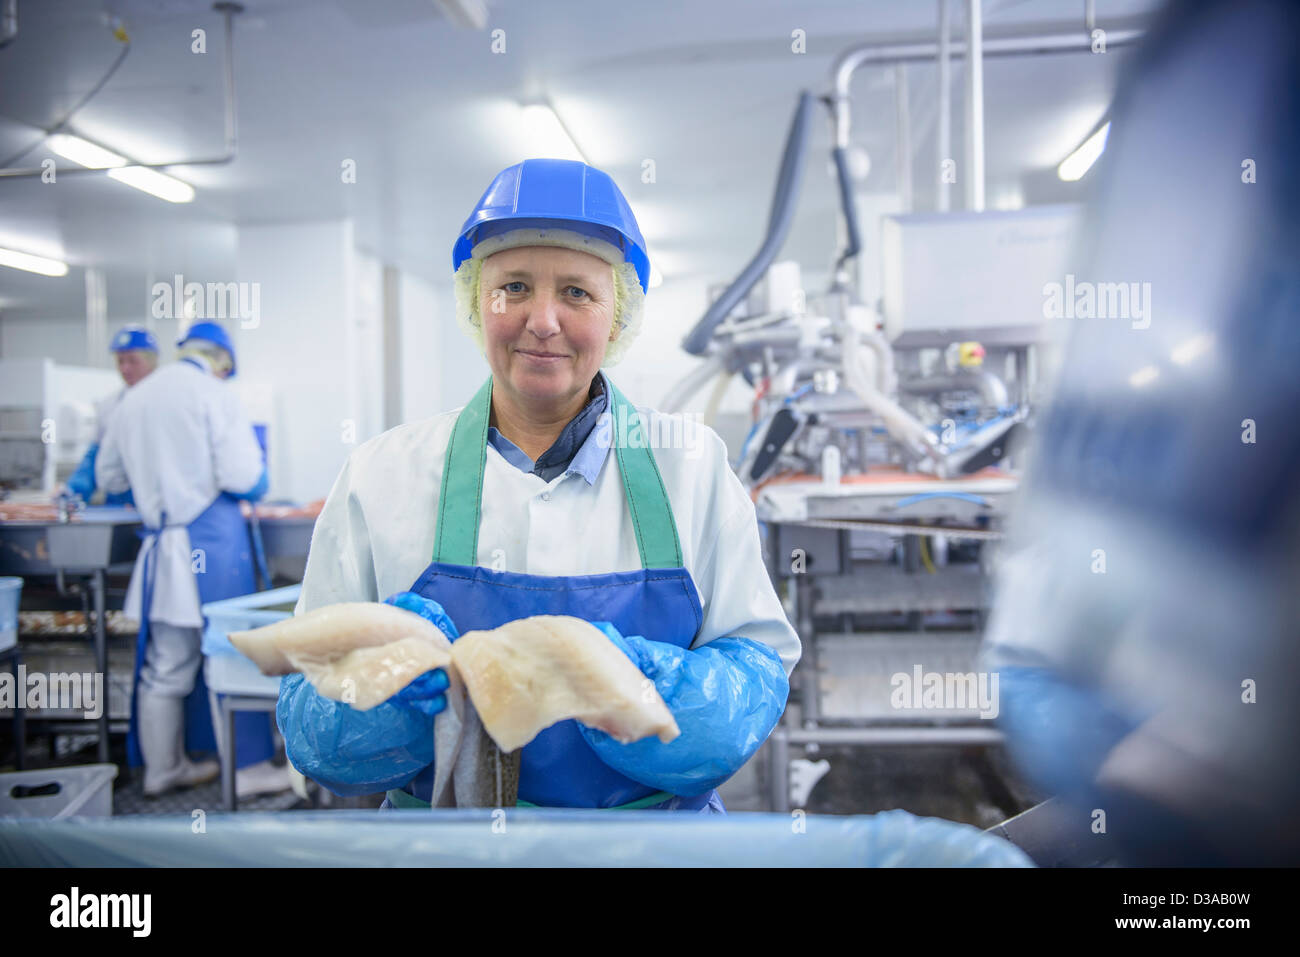 Portrait of worker holding fresh fish fillets in food factory - Stock Image